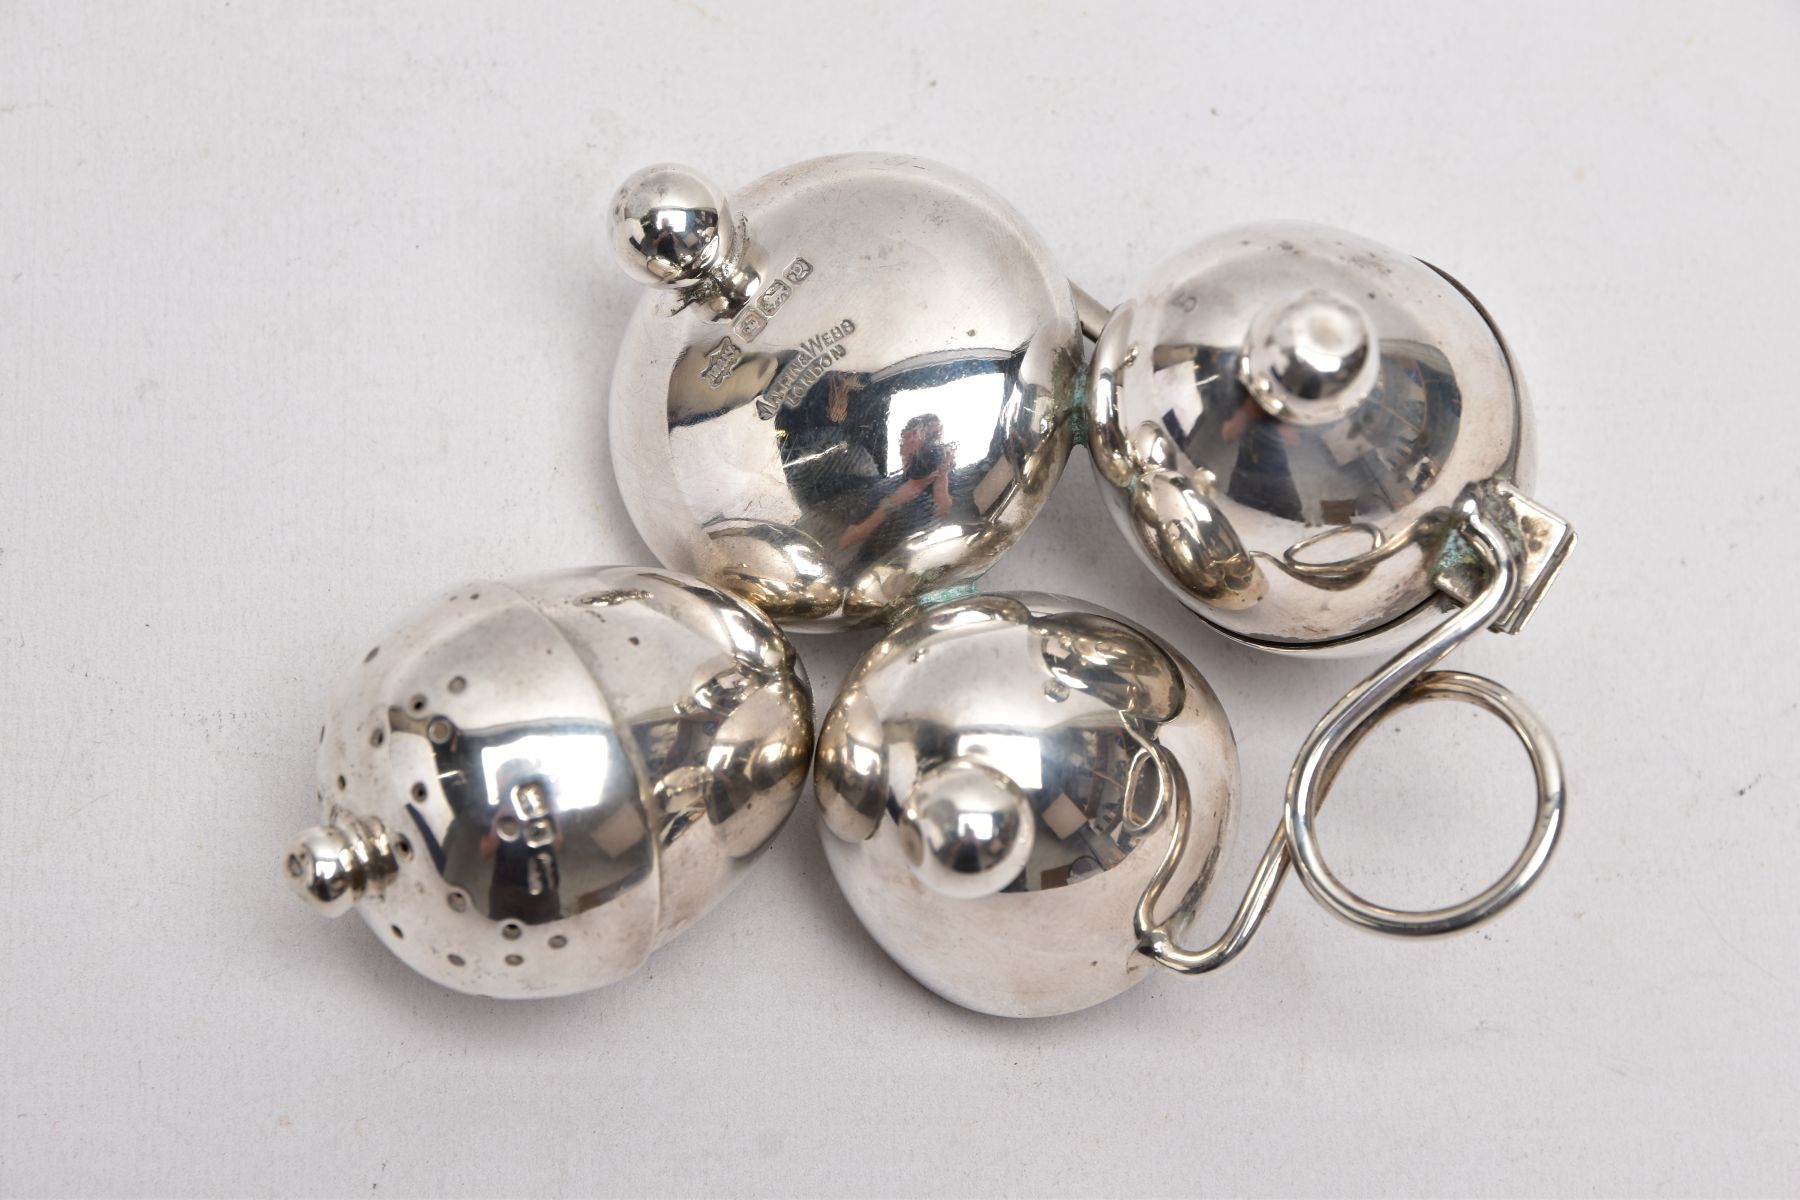 AN EARLY 20TH CENTURY 'MAPPIN & WEBB' CRUET SET, a three piece set with integral strand, - Image 5 of 5